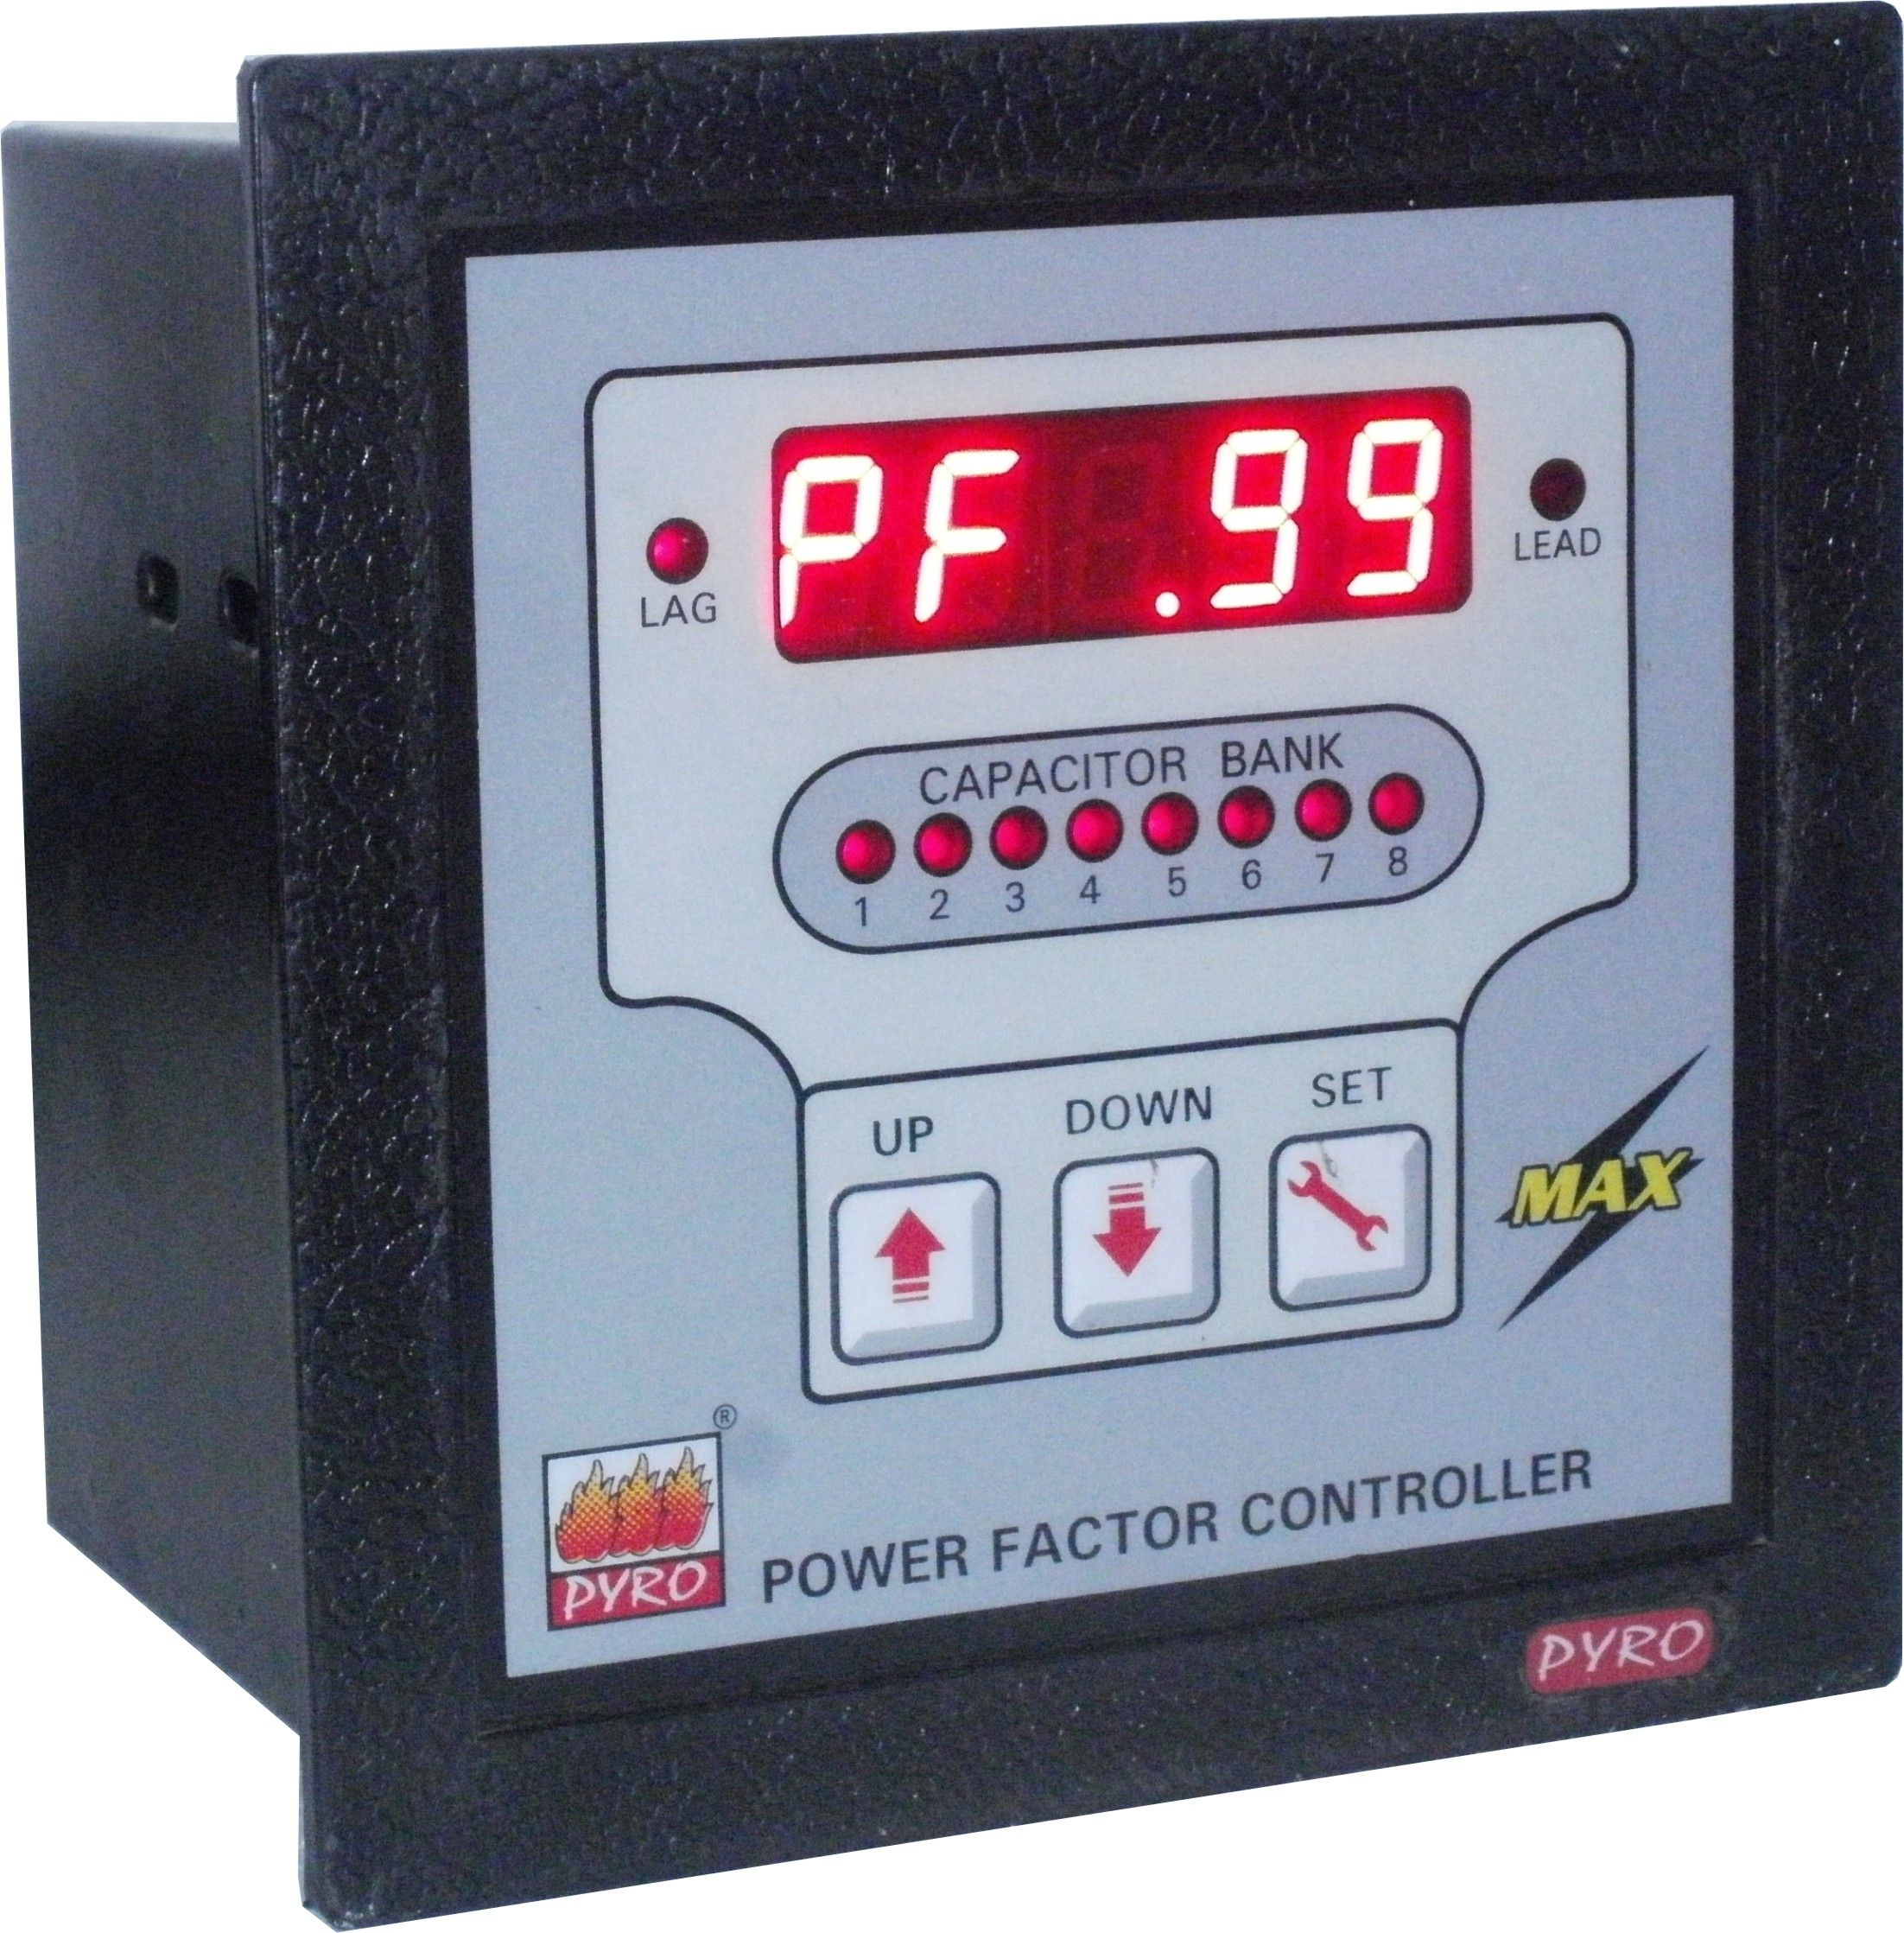 Automatic Power Factor Controller Max Power Electrical Energy Save Energy